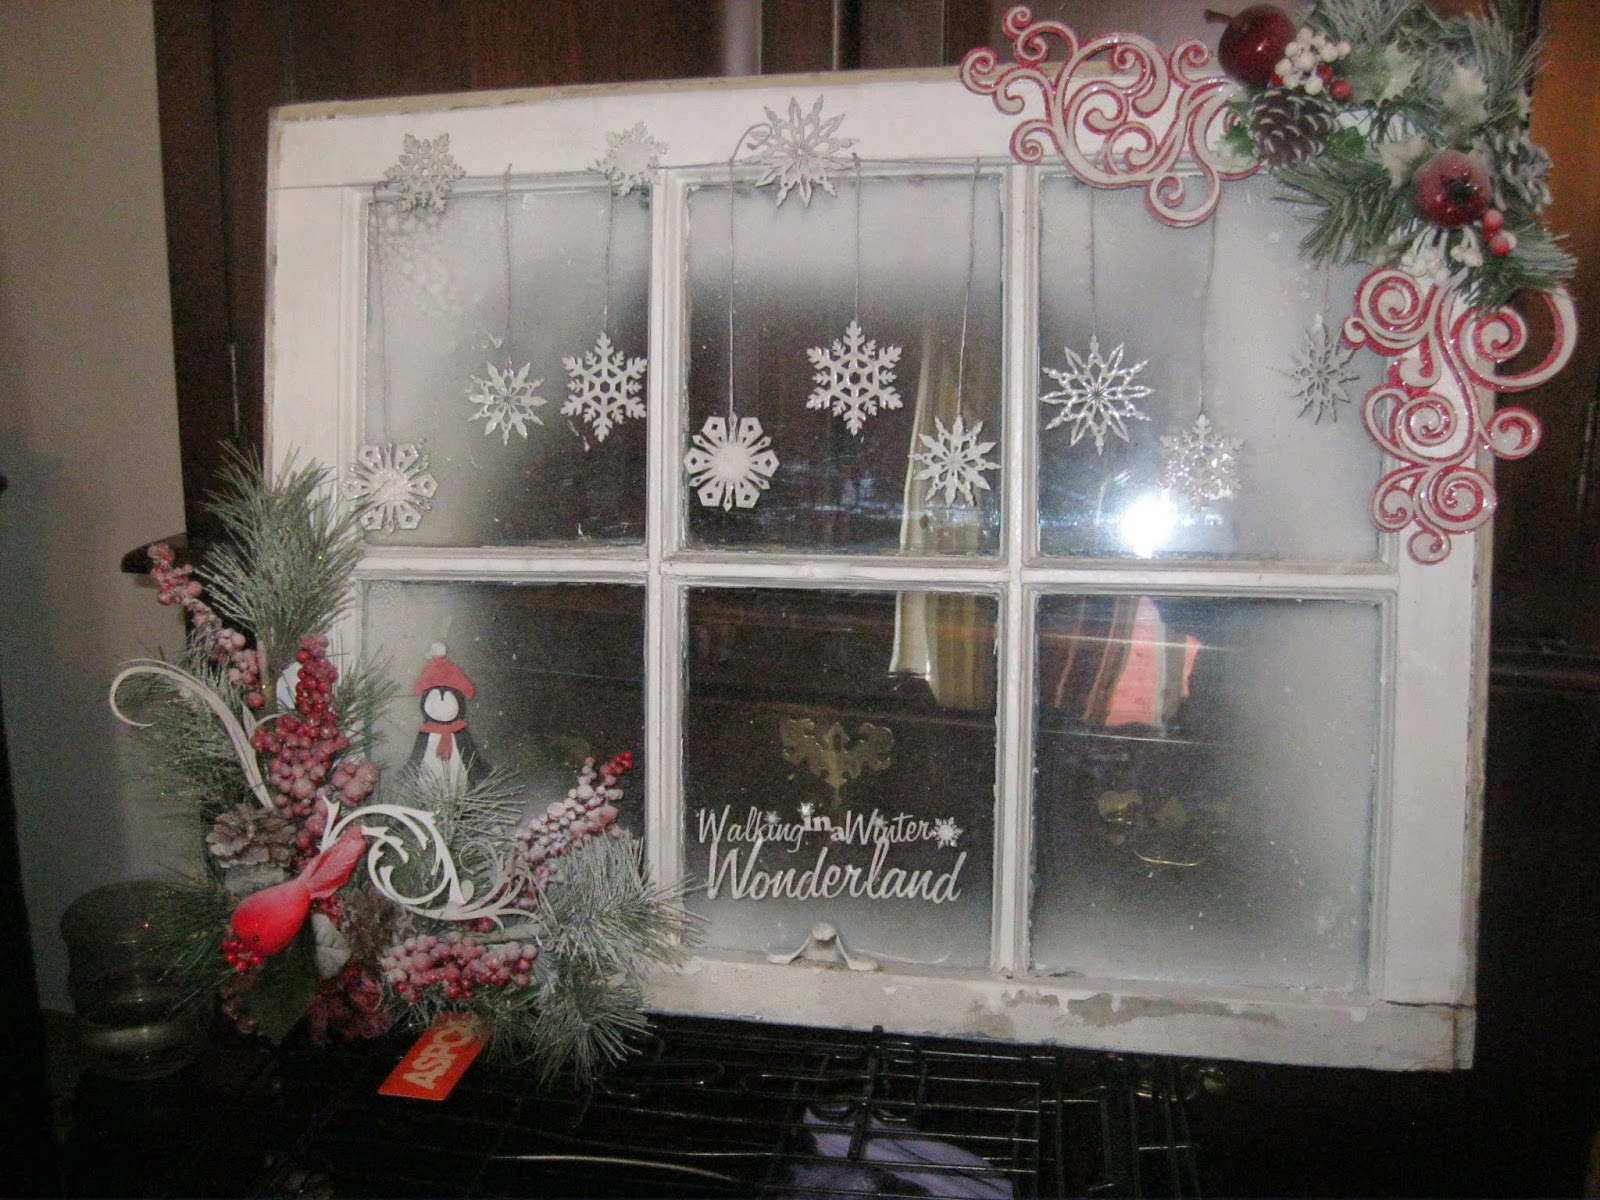 Christmas Window Decorations Fake Snow | Psoriasisguru.com